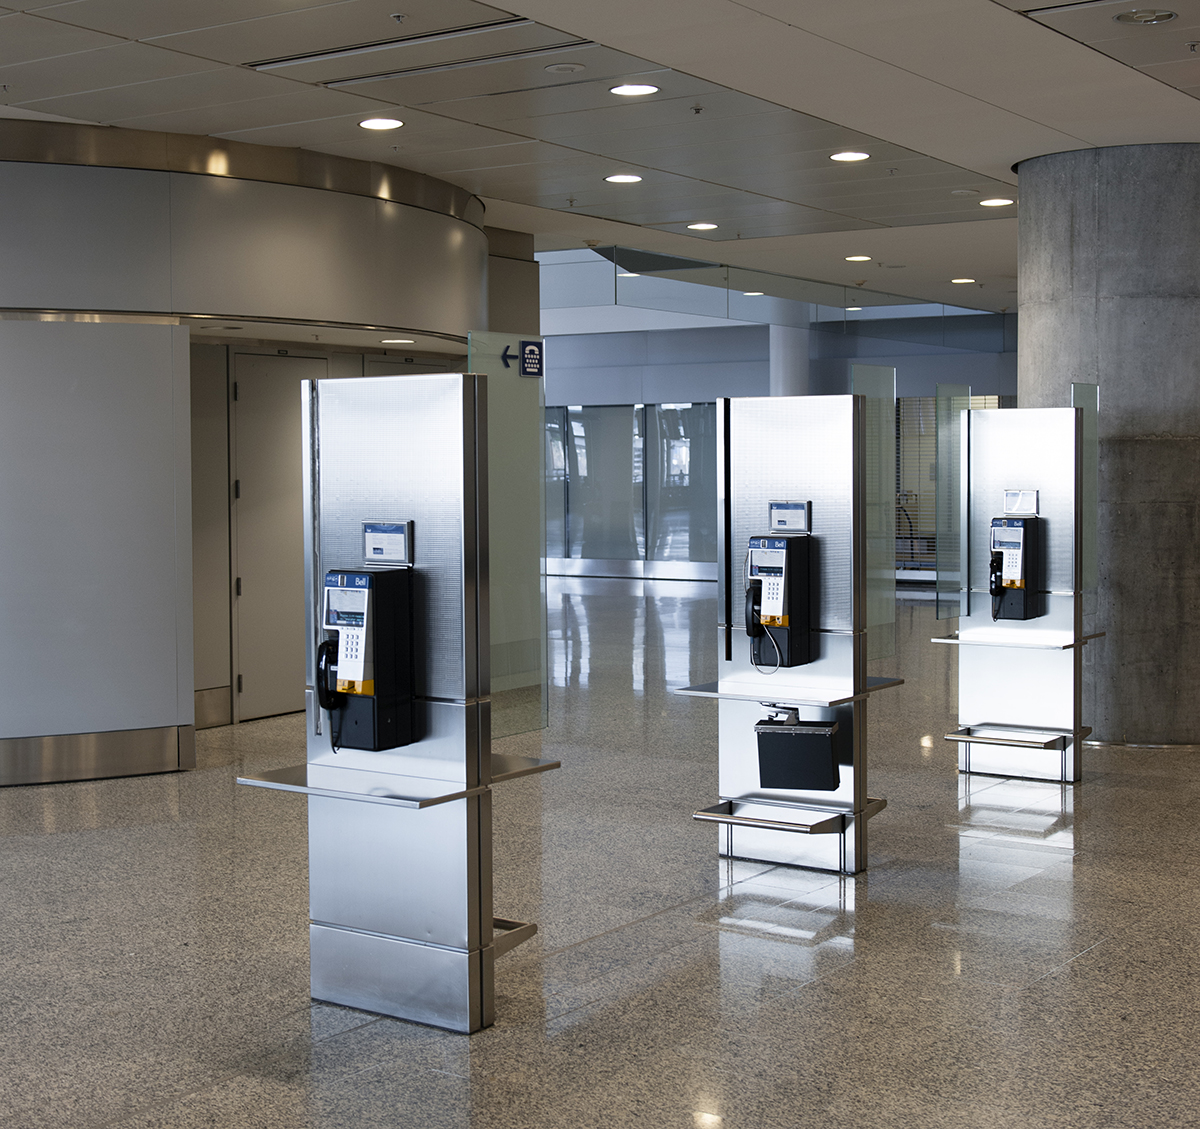 The Laird Co Pearson Terminal 1 Phone Empty Interior Design Architecture Travel Photography for site.jpg